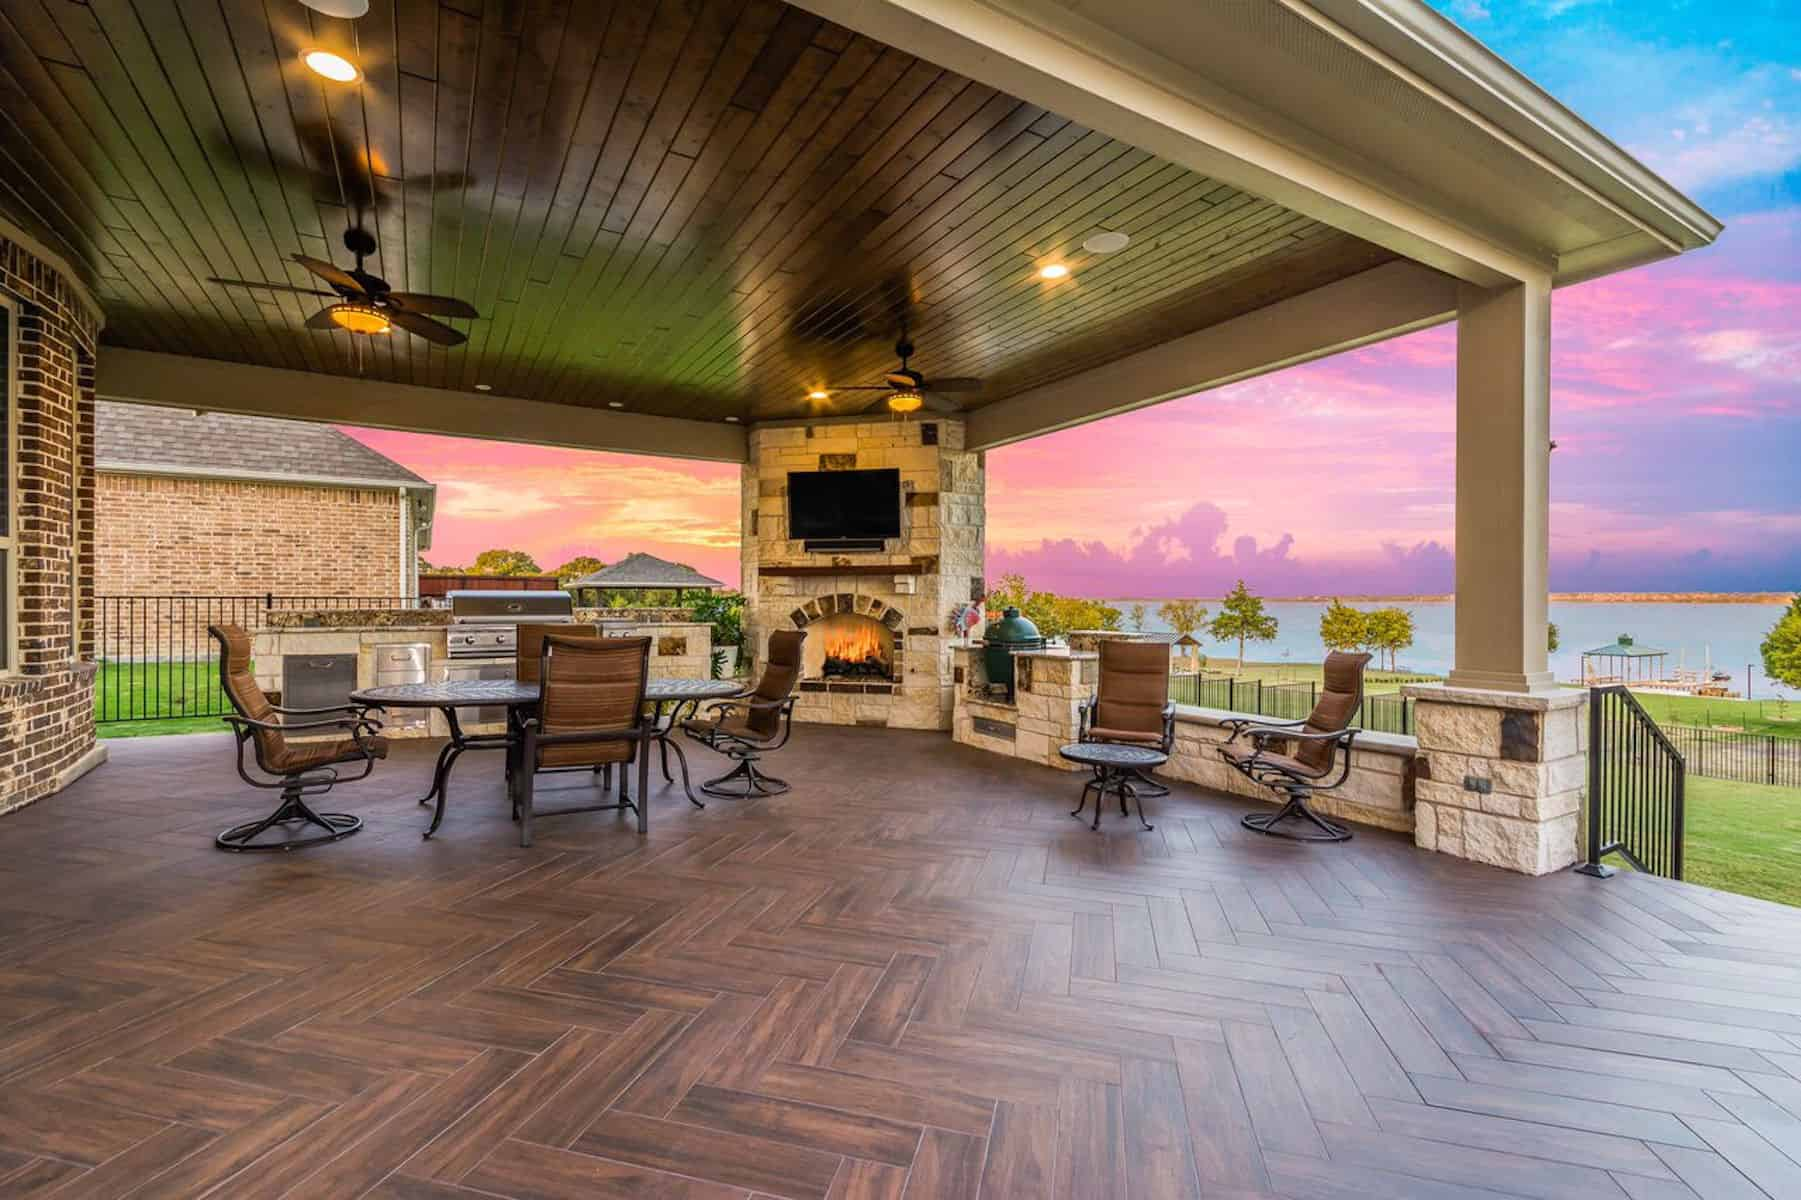 Outdoor Living Blog - Texas Custom Patios on Covered Outdoor Living Area id=30756